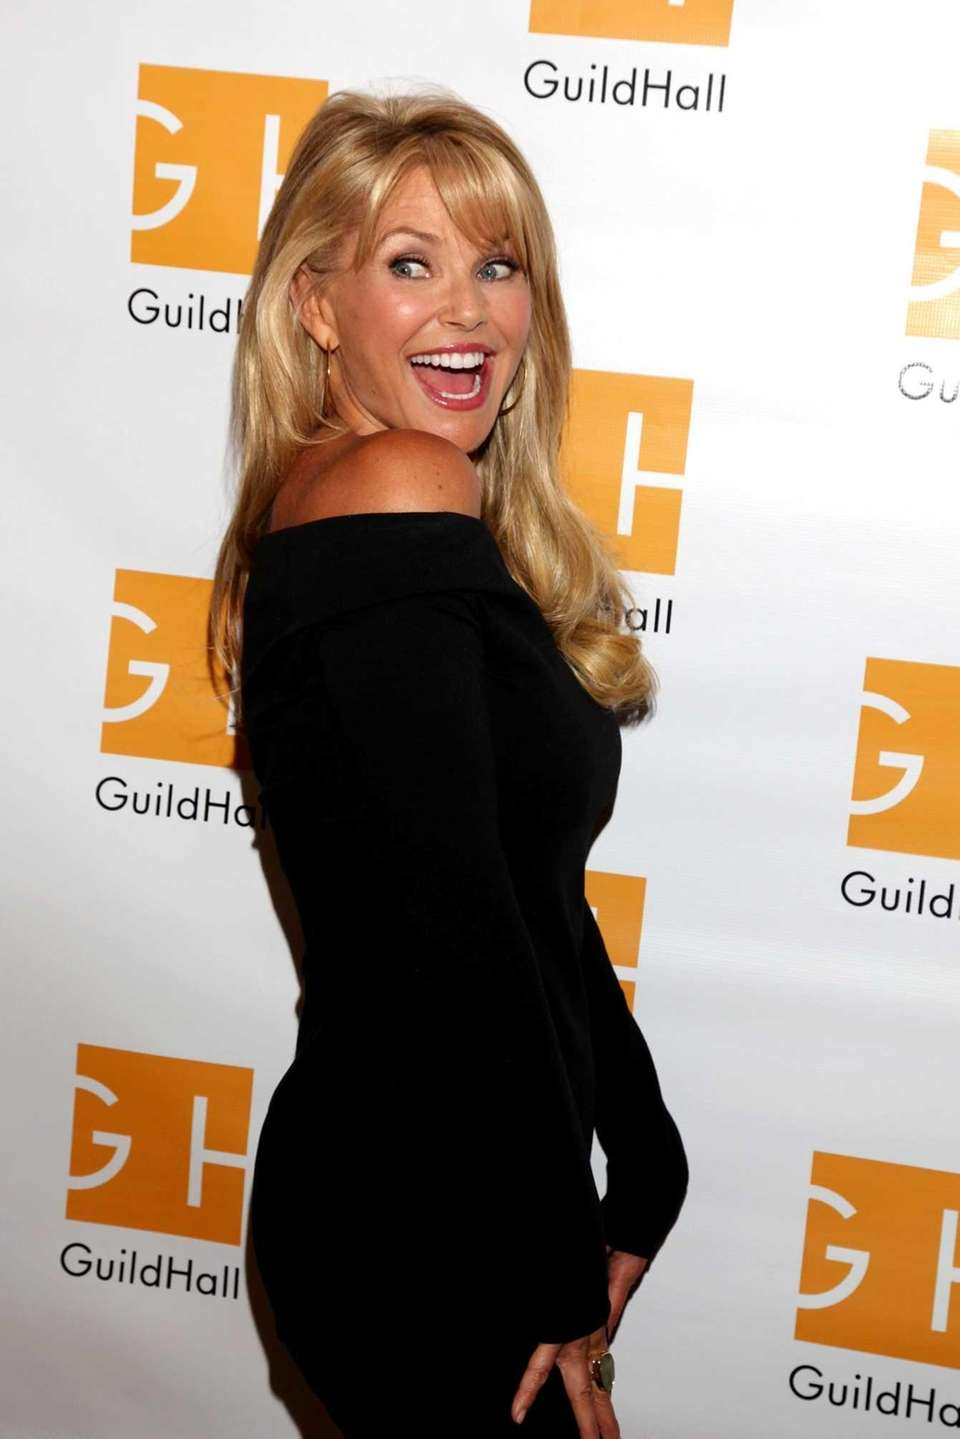 Christie Brinkley attends the